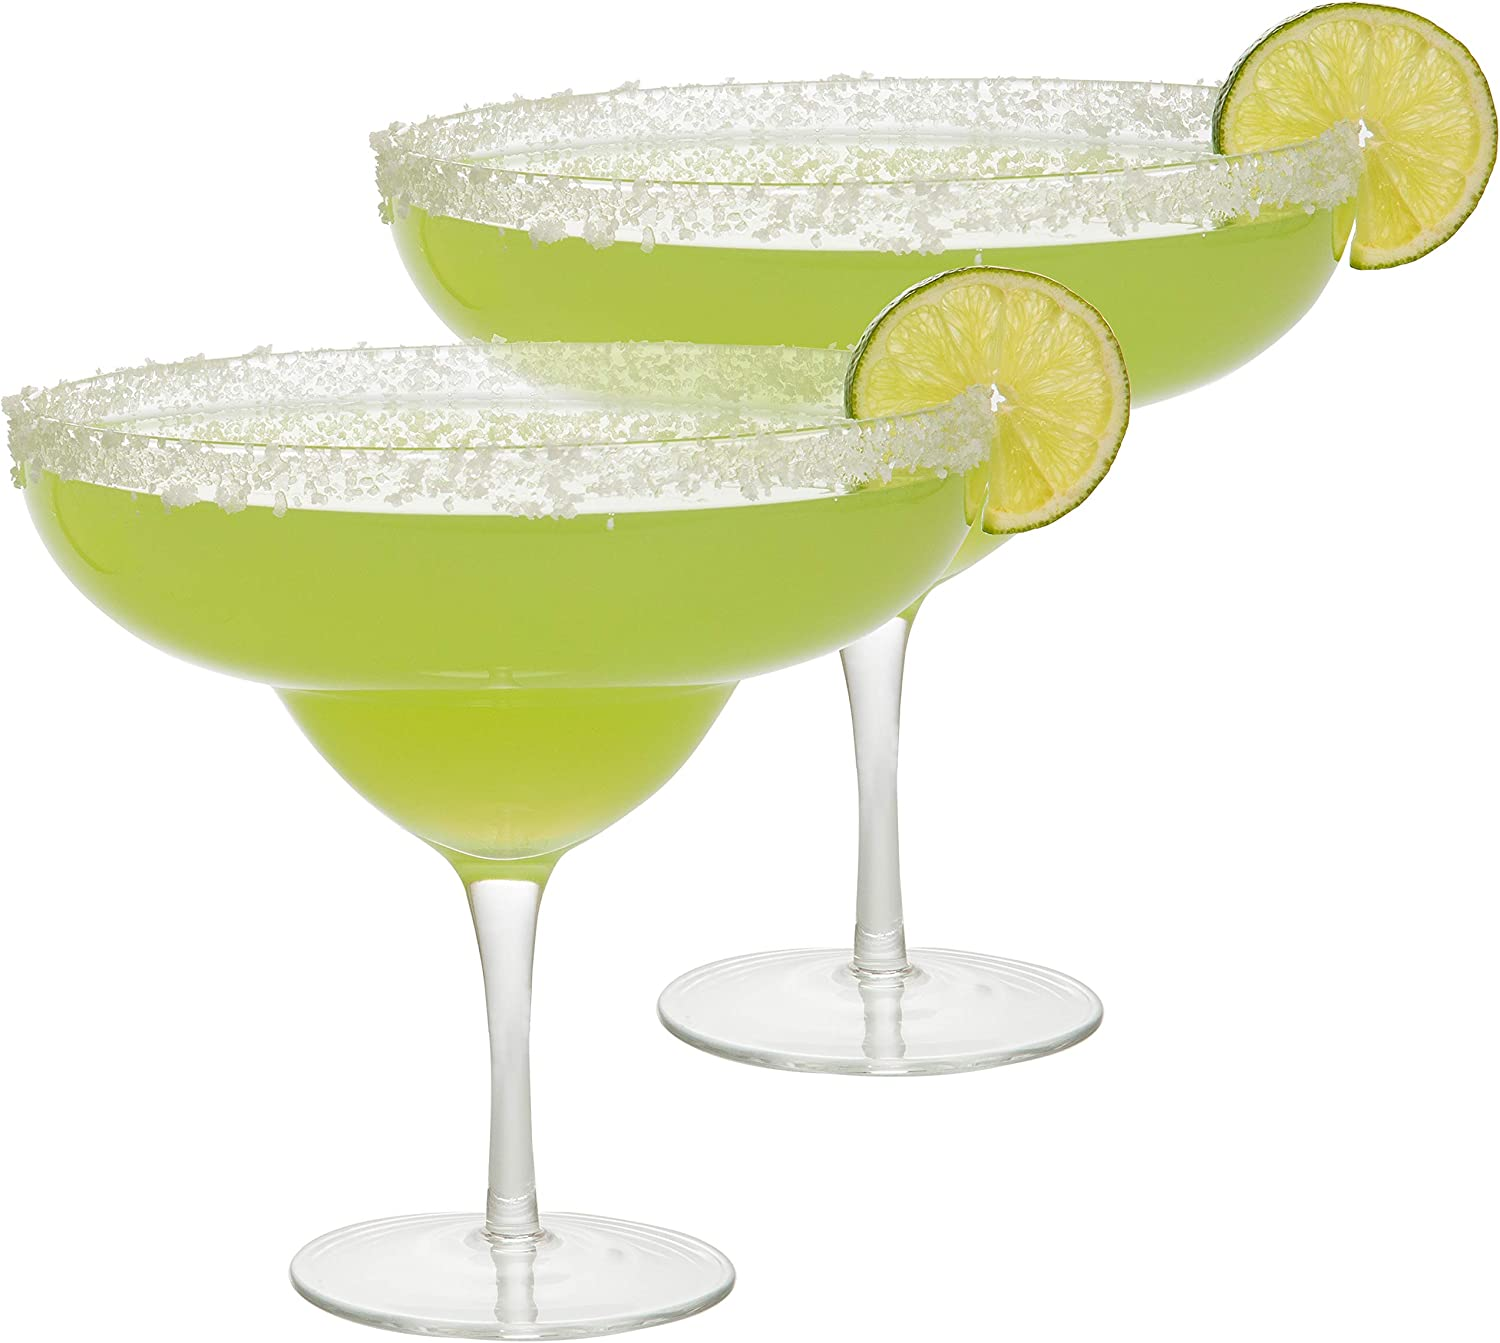 Extra Large Giant Margarita Glasses 2 pack - 34oz per glass - Each fits about 3 typical margaritas!